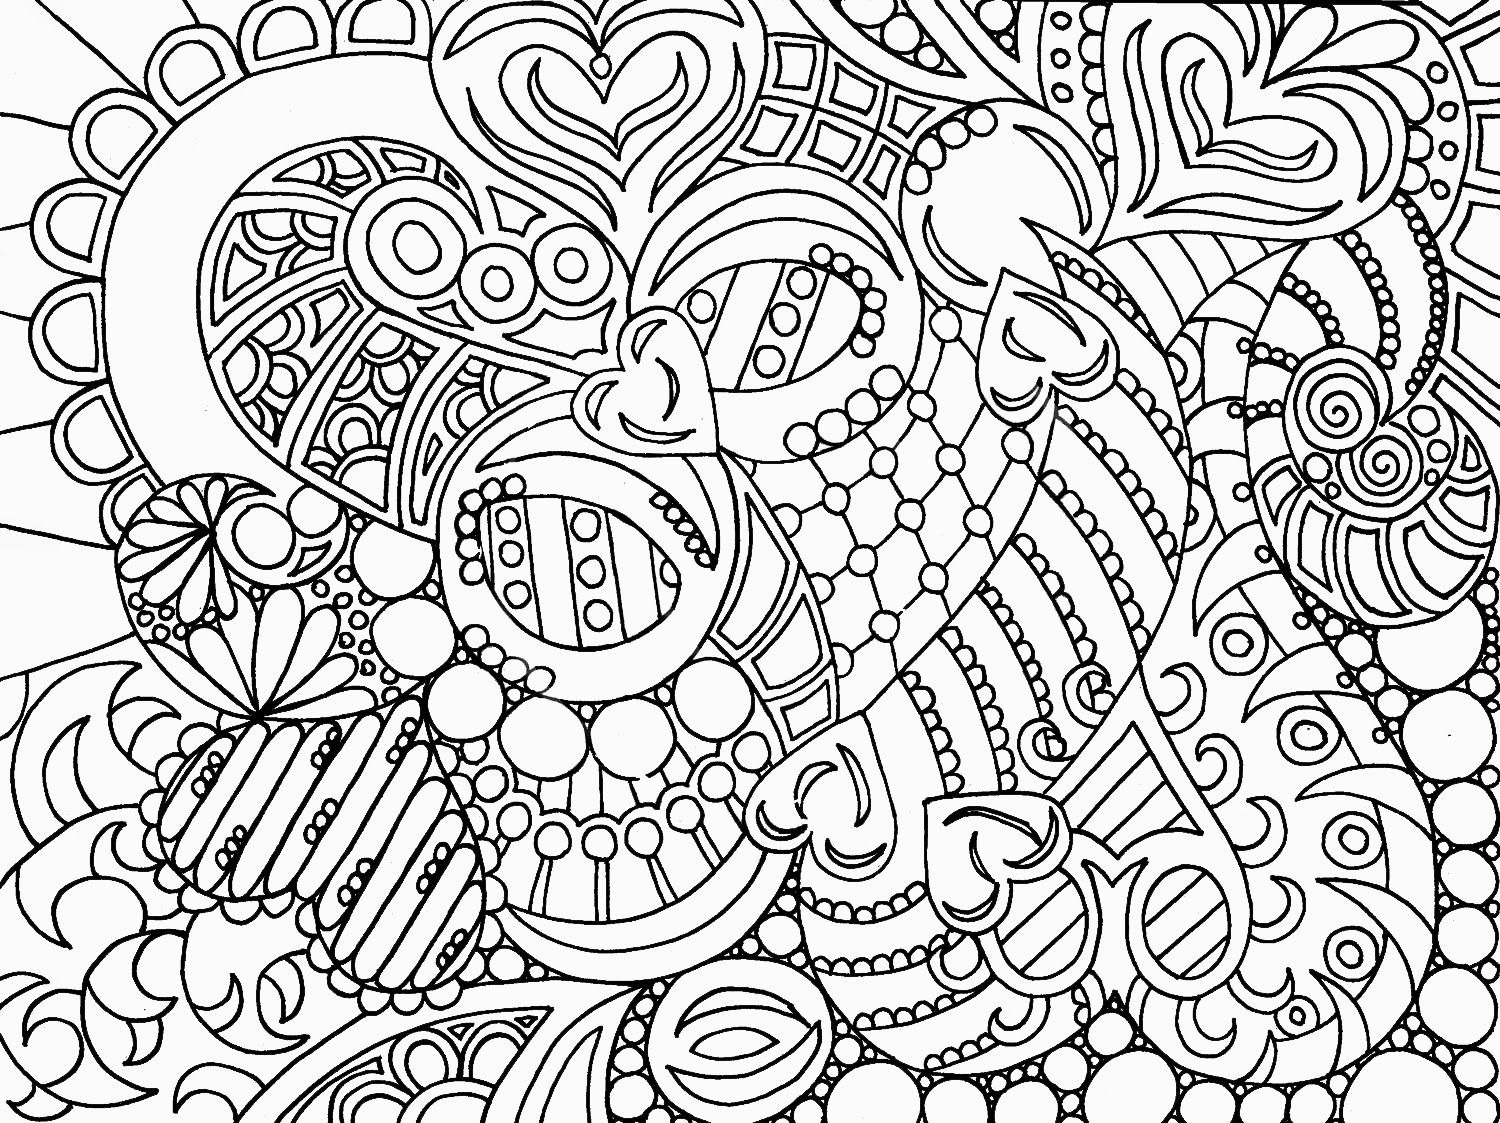 Online coloring for adults free - Abstract Coloring Pages You Can Get Abstract Art Coloring Pages For Adult Here